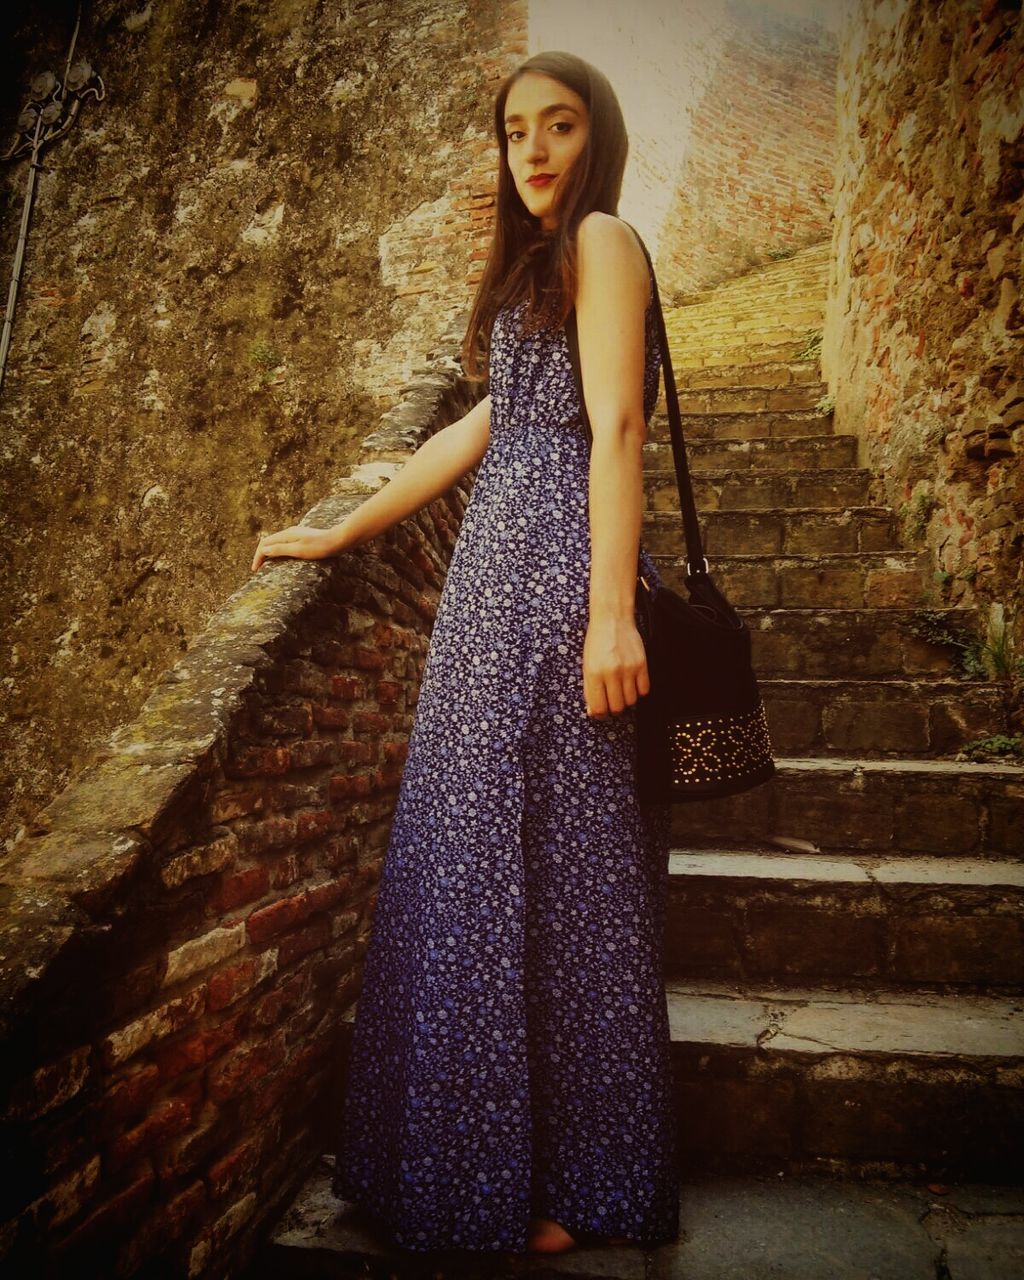 Full Length Portrait Of Beautiful Woman Standing Old Stairs